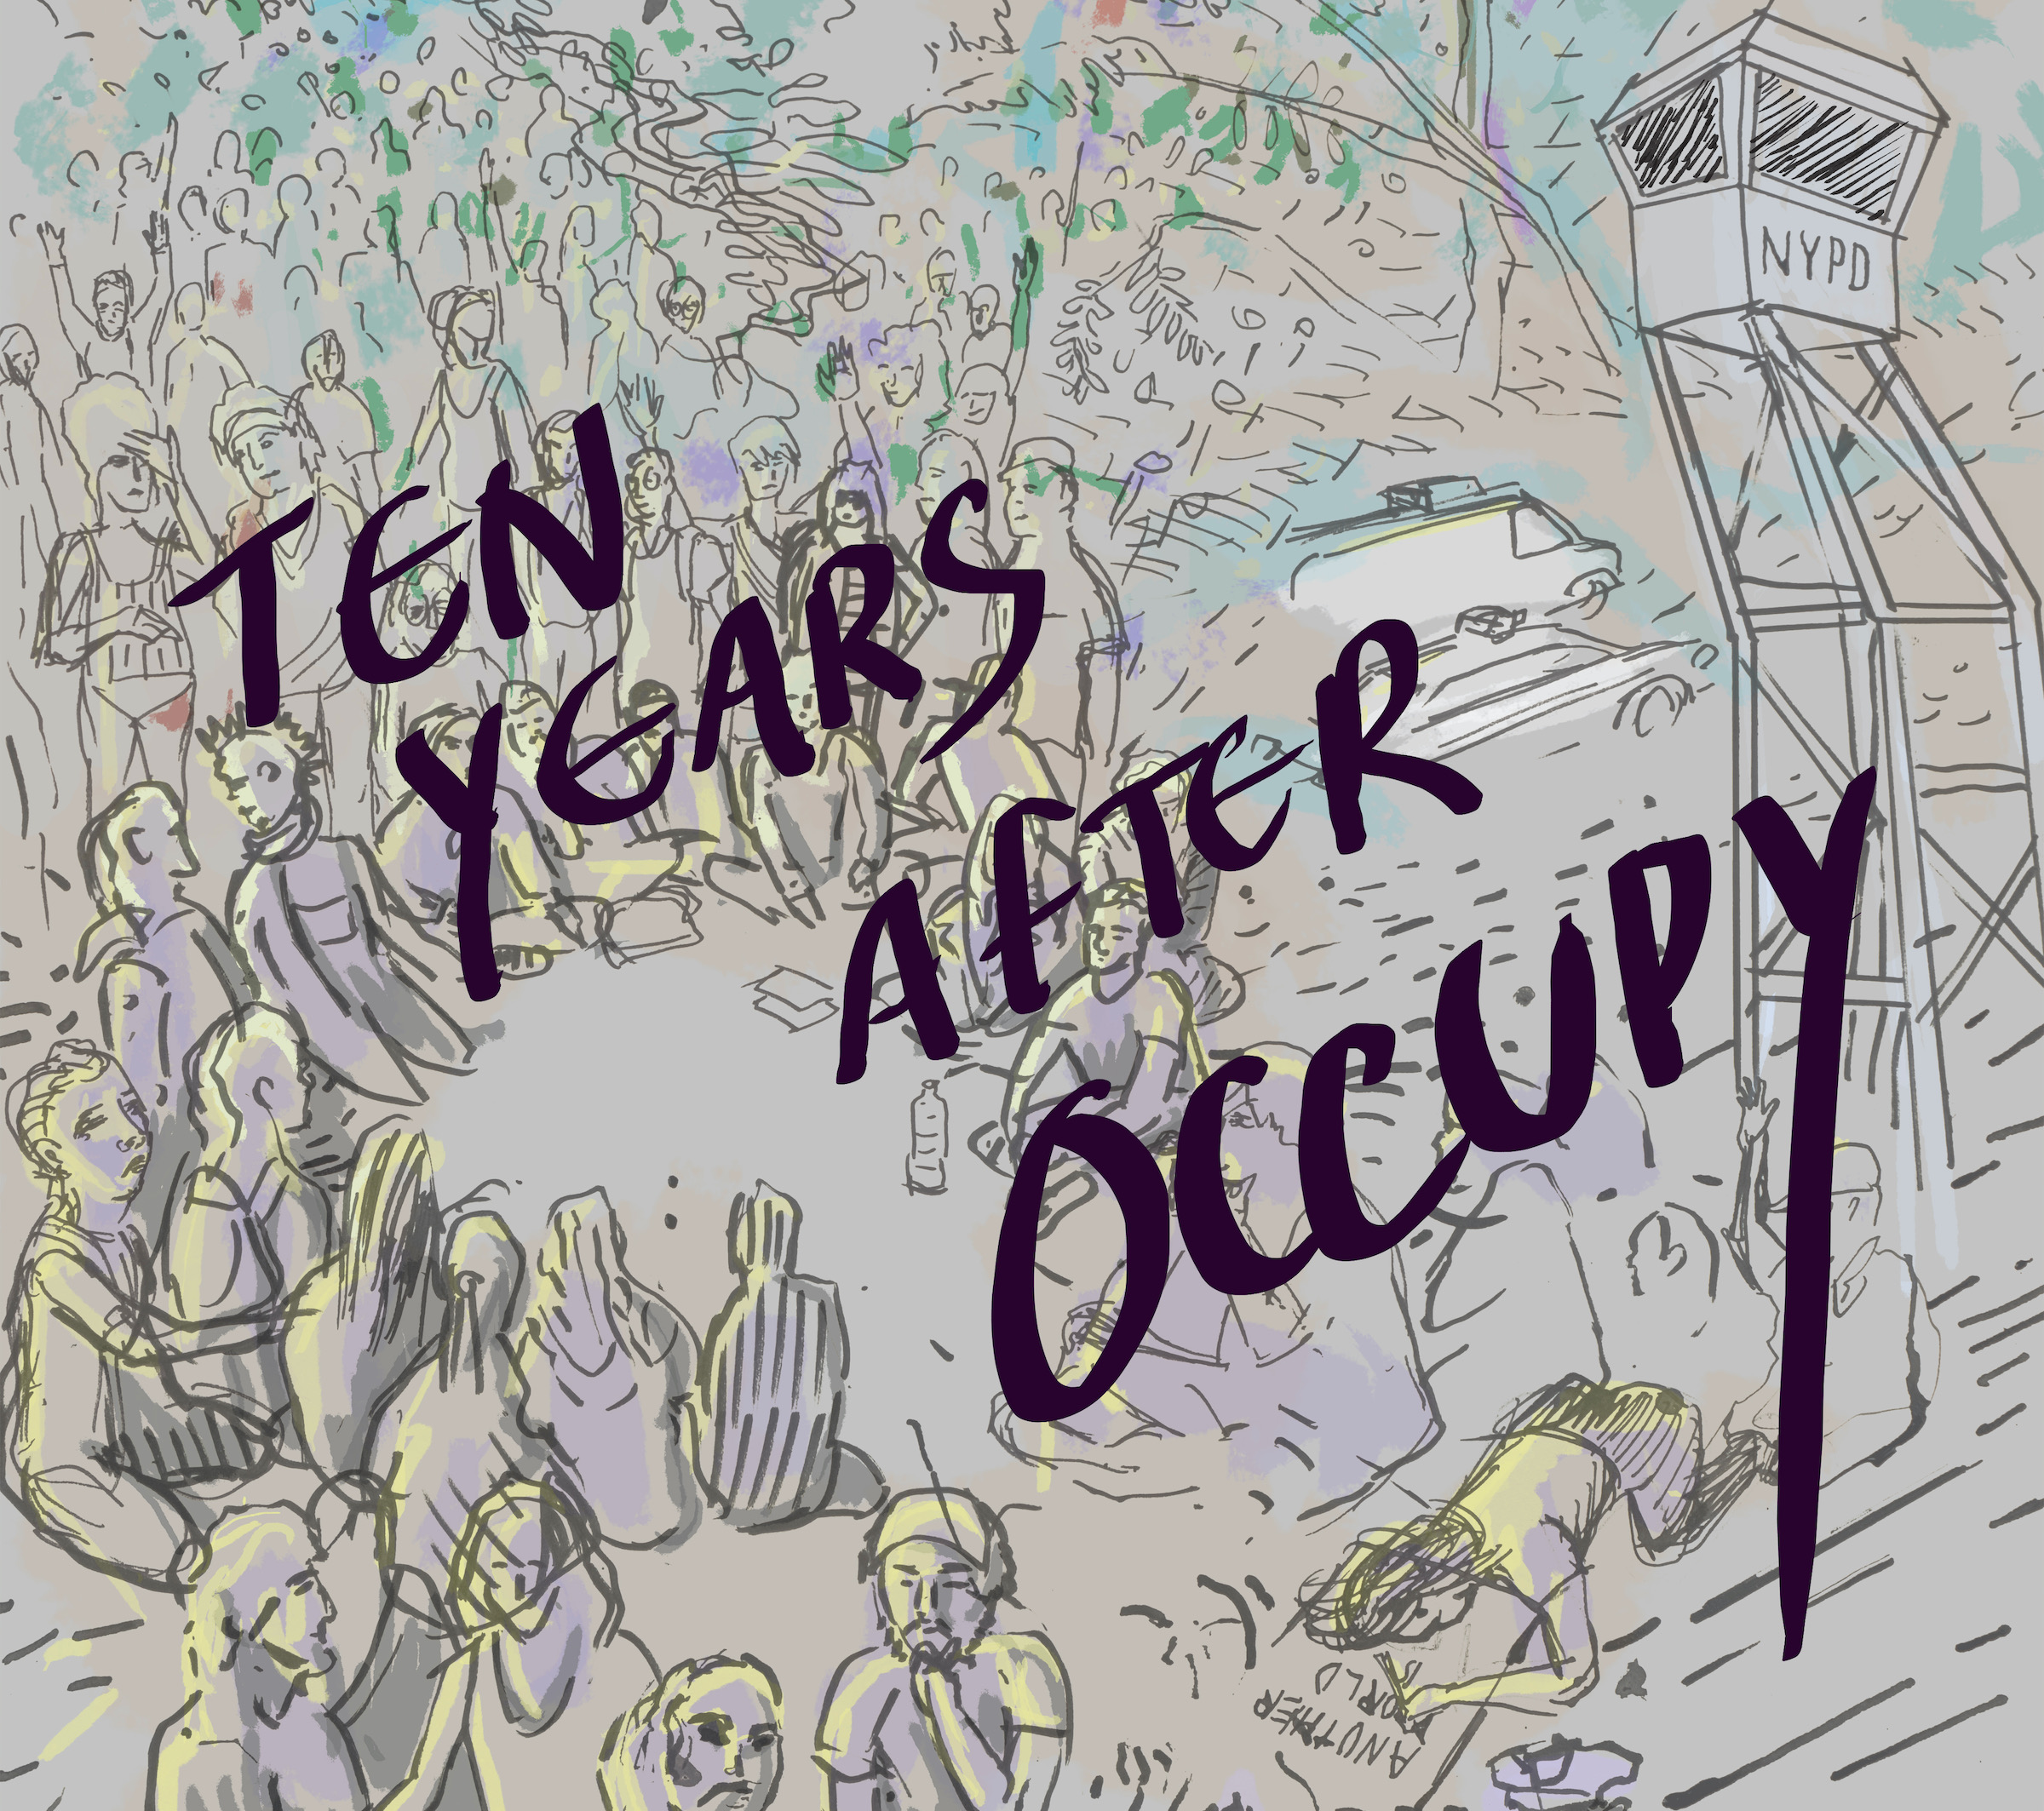 Thinking About Art on the 10th Anniversary of Occupy Wall Street